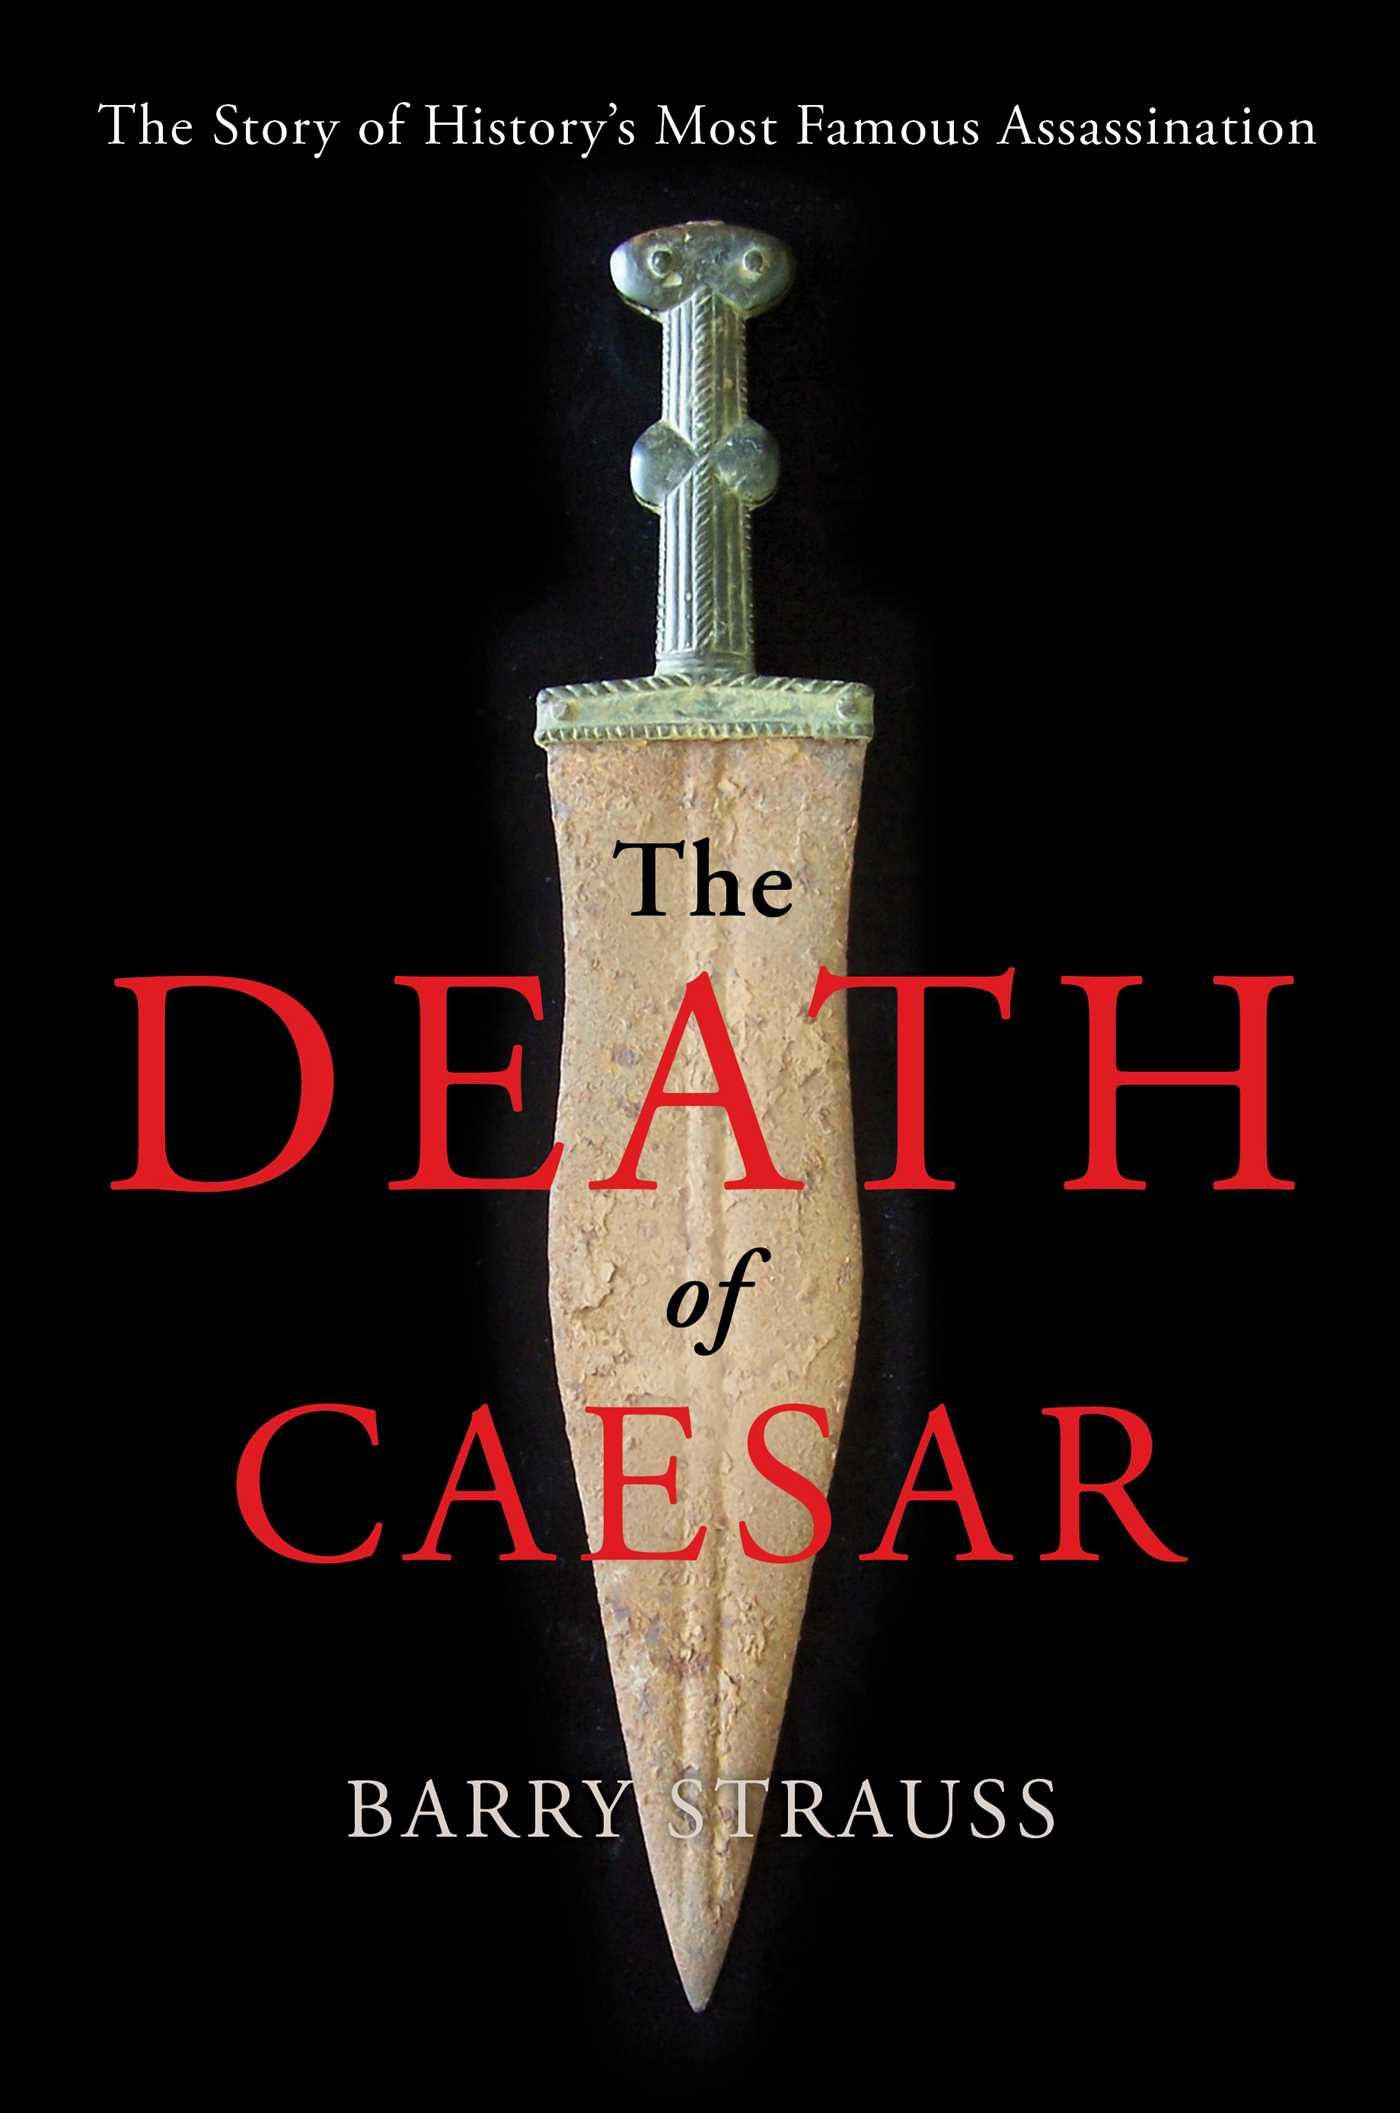 The-death-of-caesar-9781451668797_hr